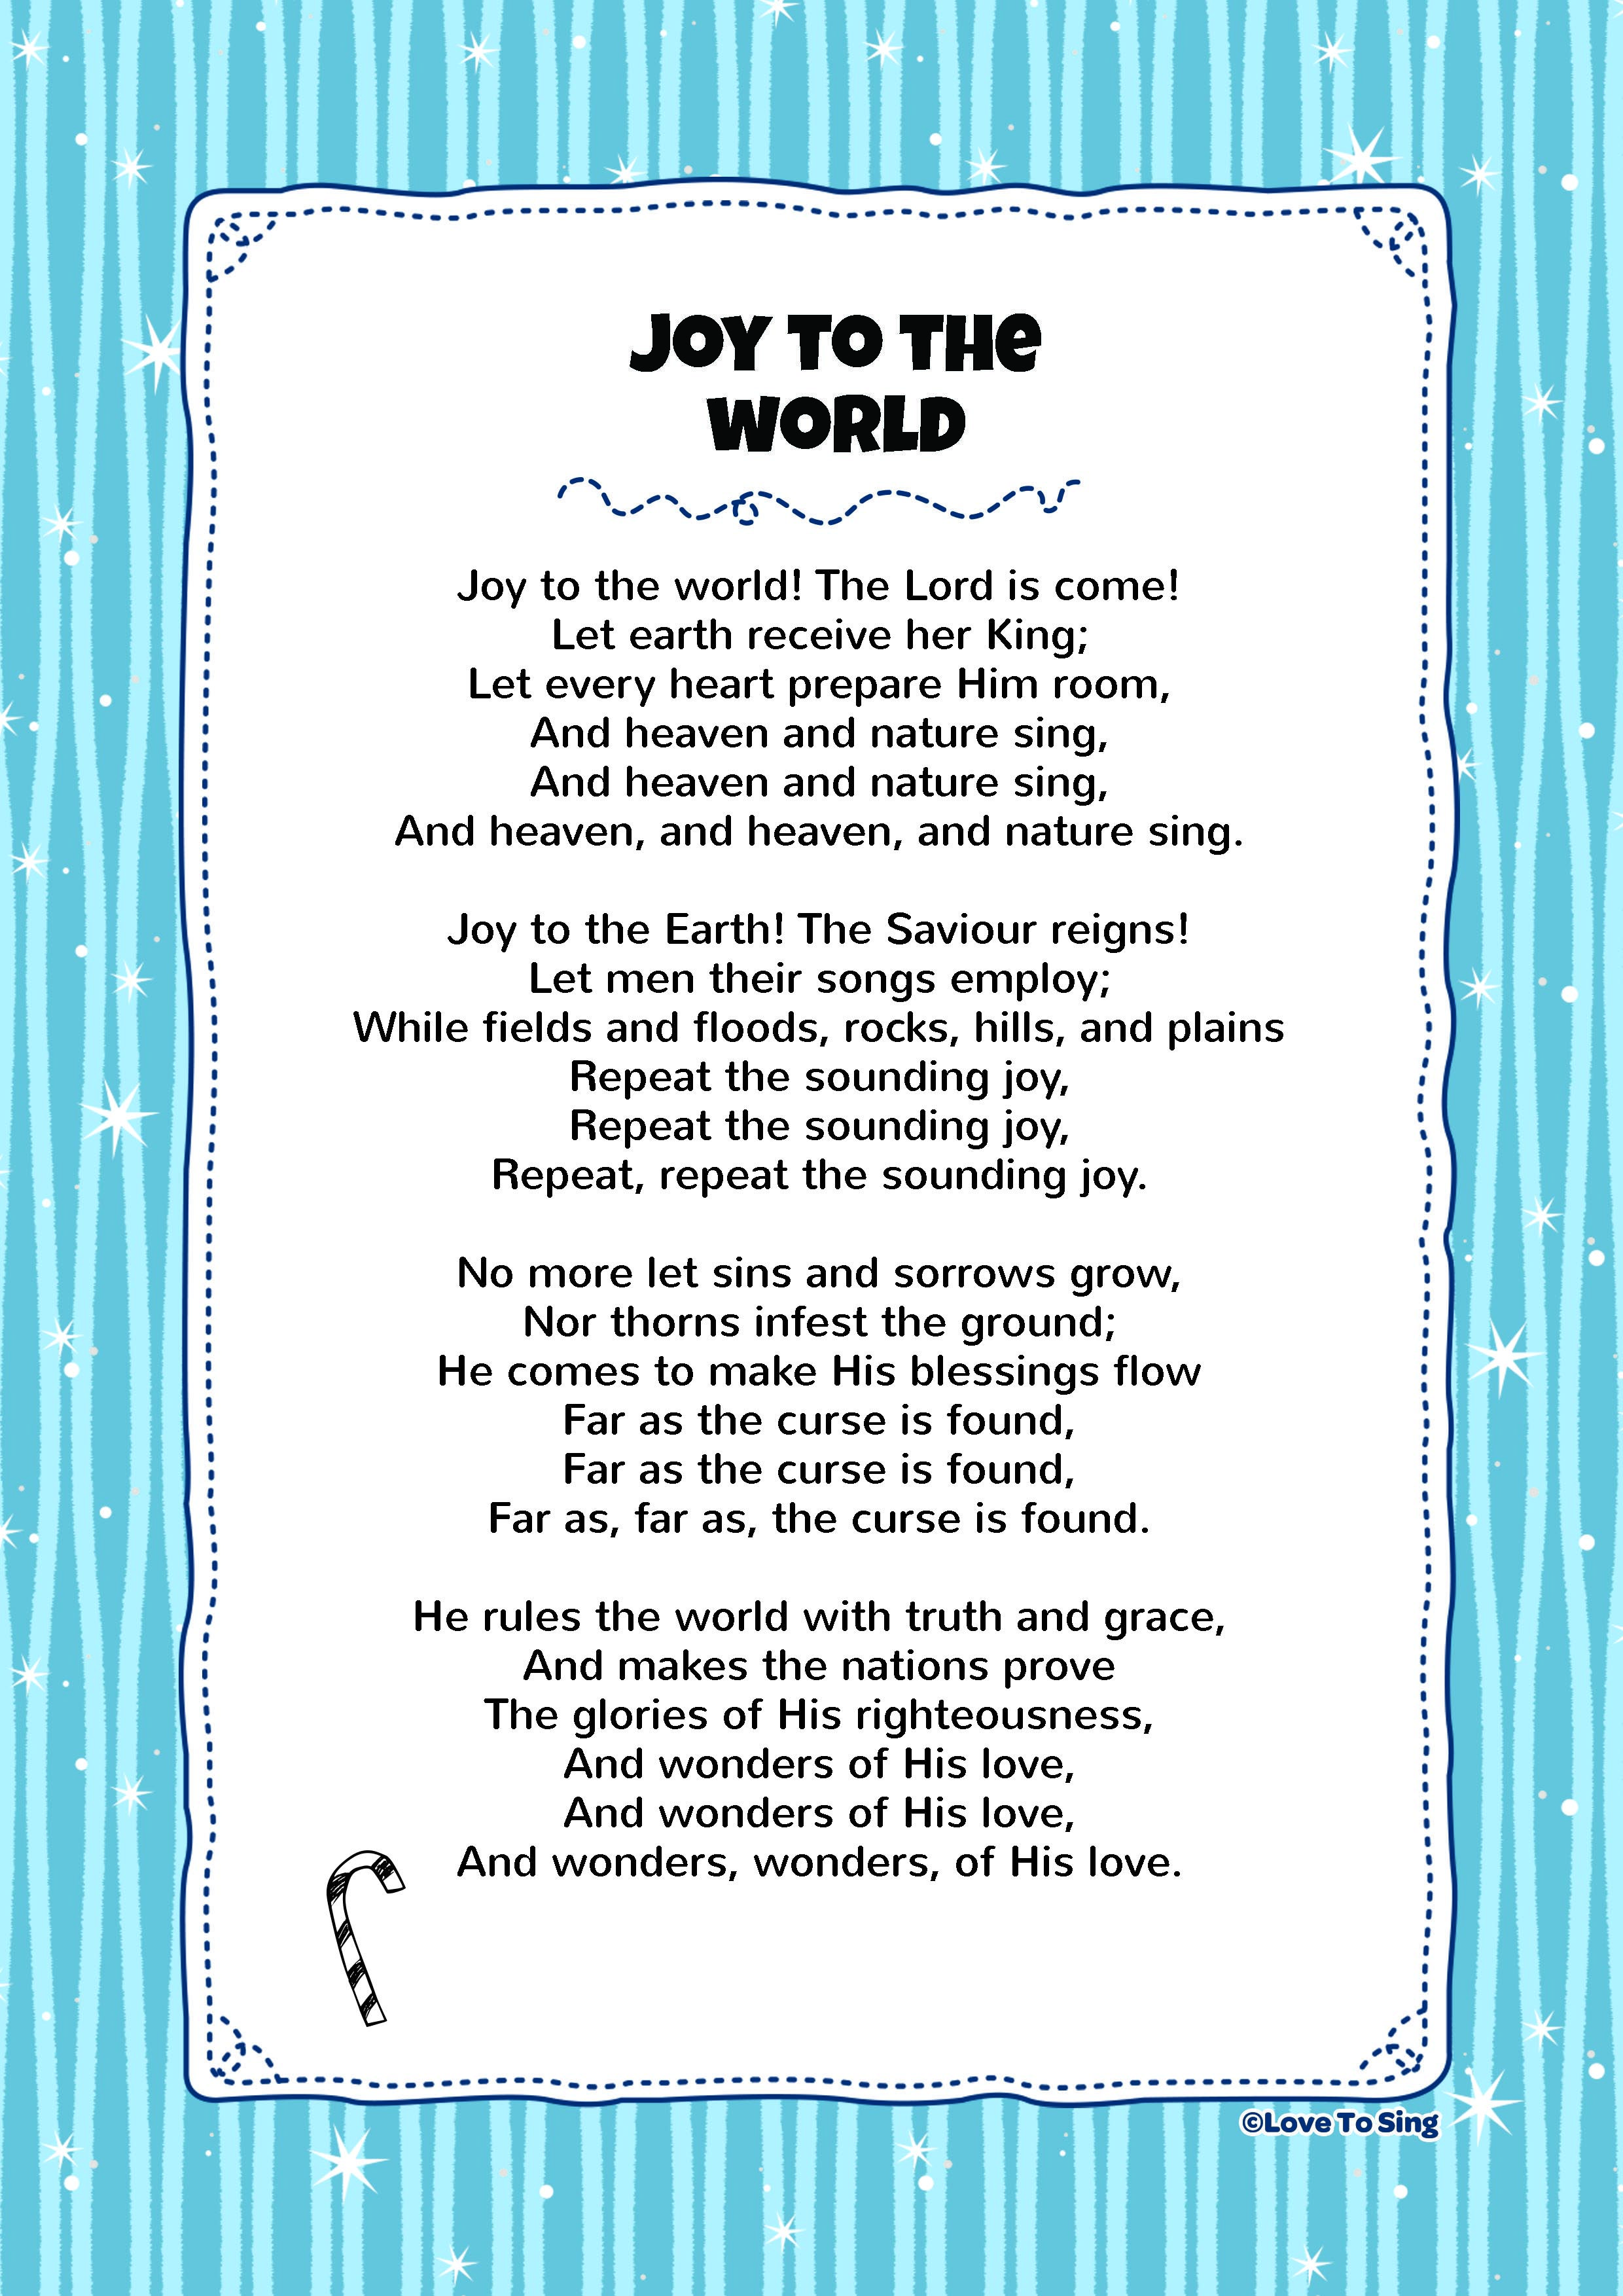 Joy To The World Kids Video Song with FREE Lyrics